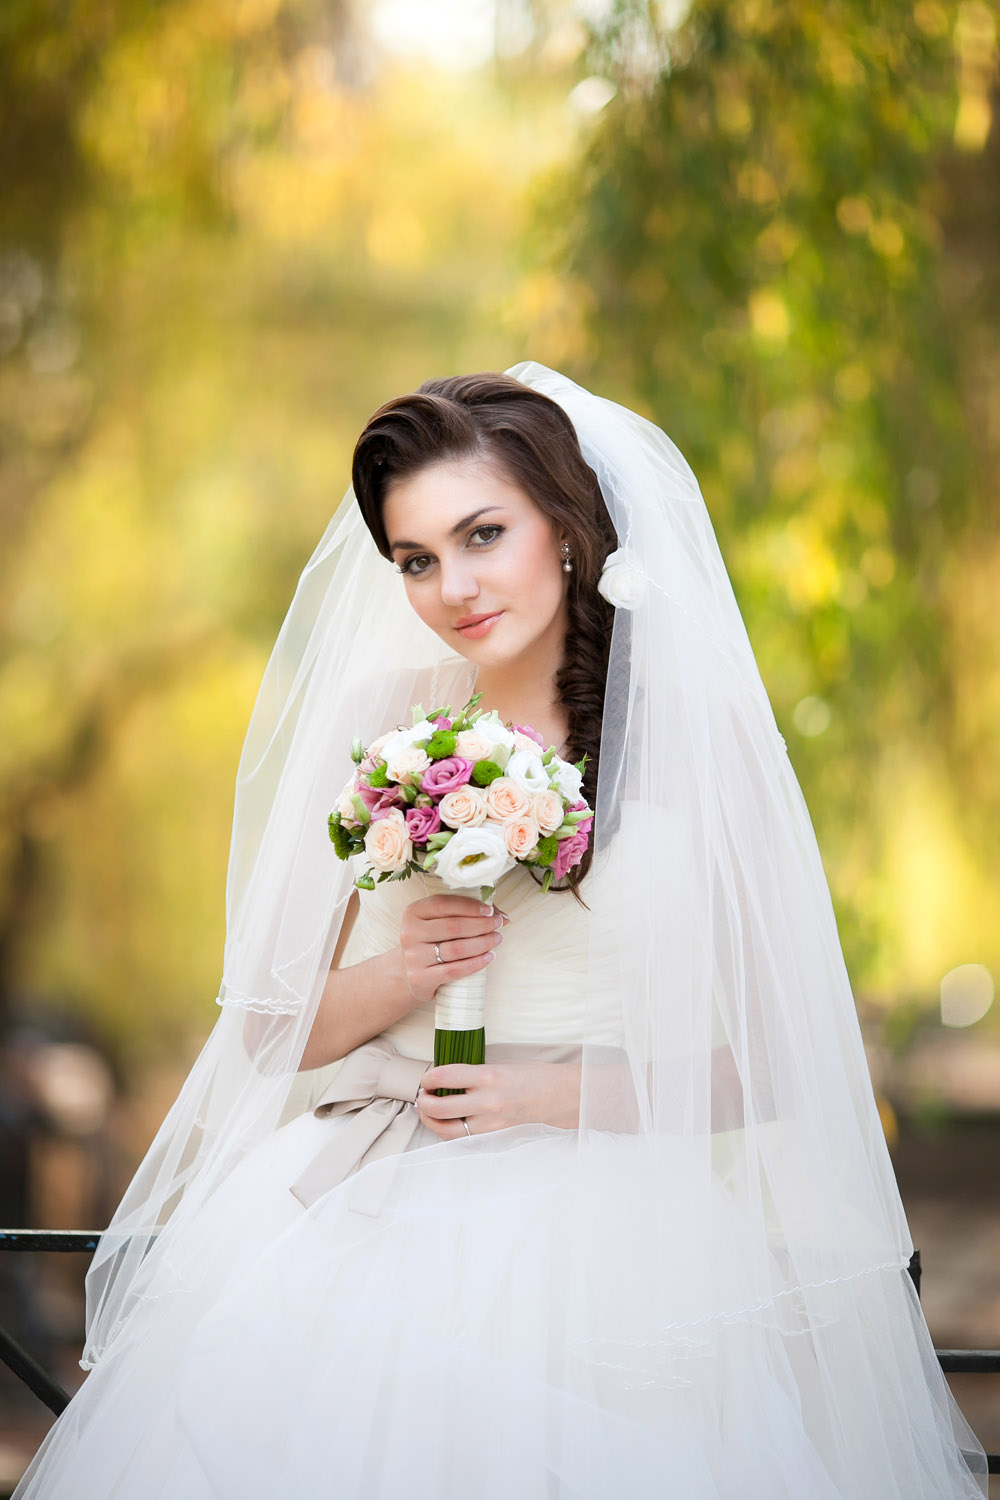 Questions About Wedding Dress Restoration And Preservation